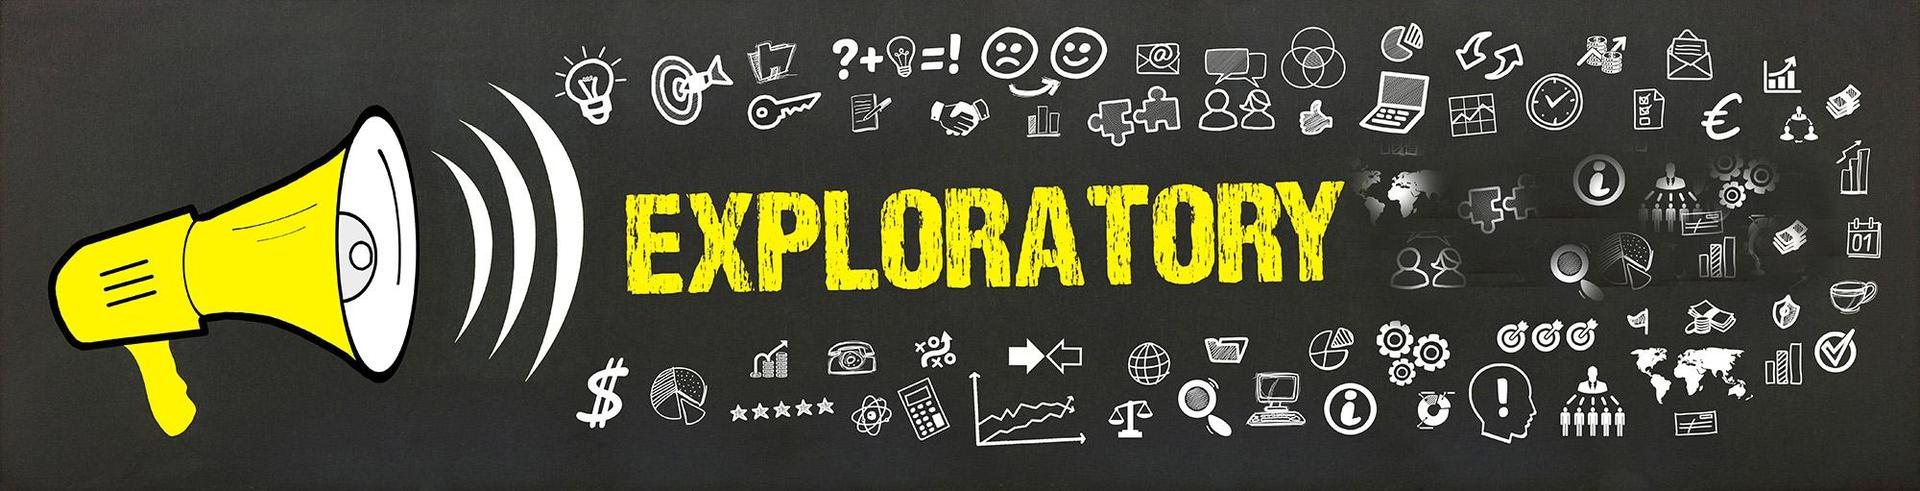 "Design concept, a megaphone saying the word ""exploratory"" with various icons"